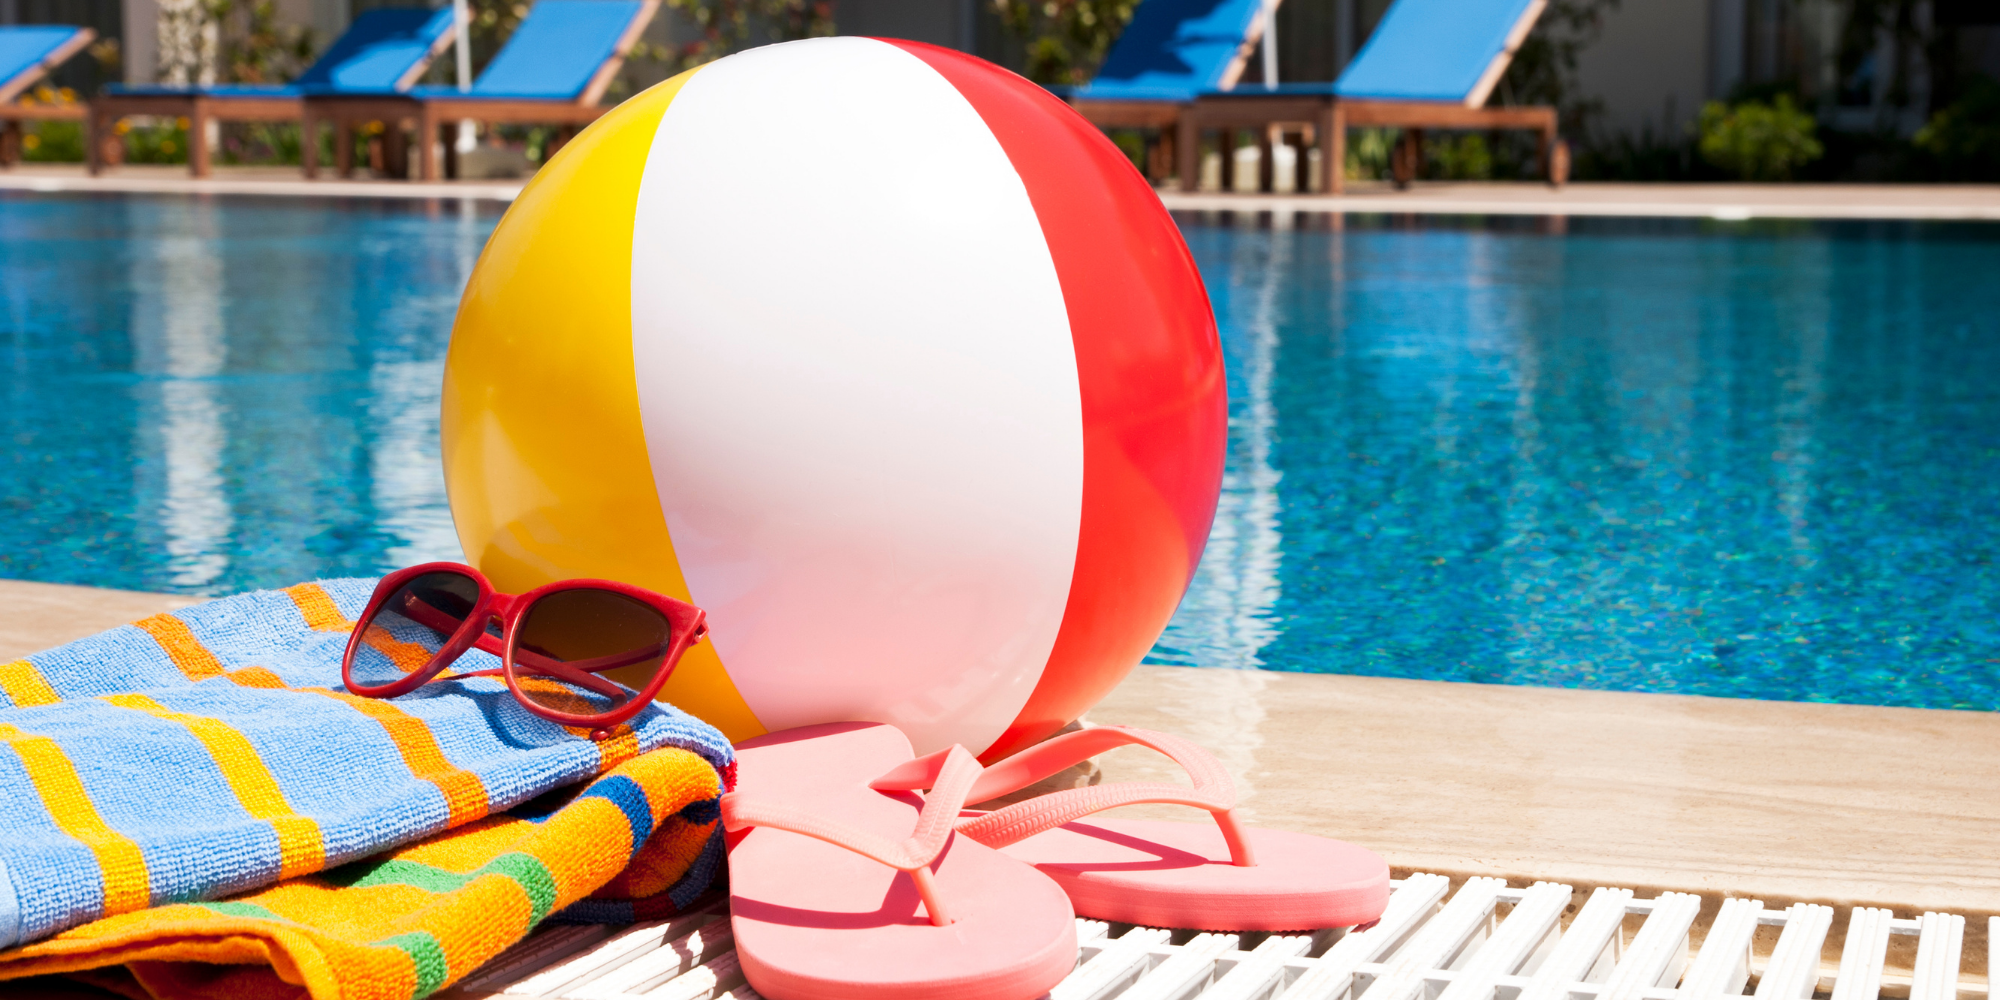 4 ways to make the most of your summer